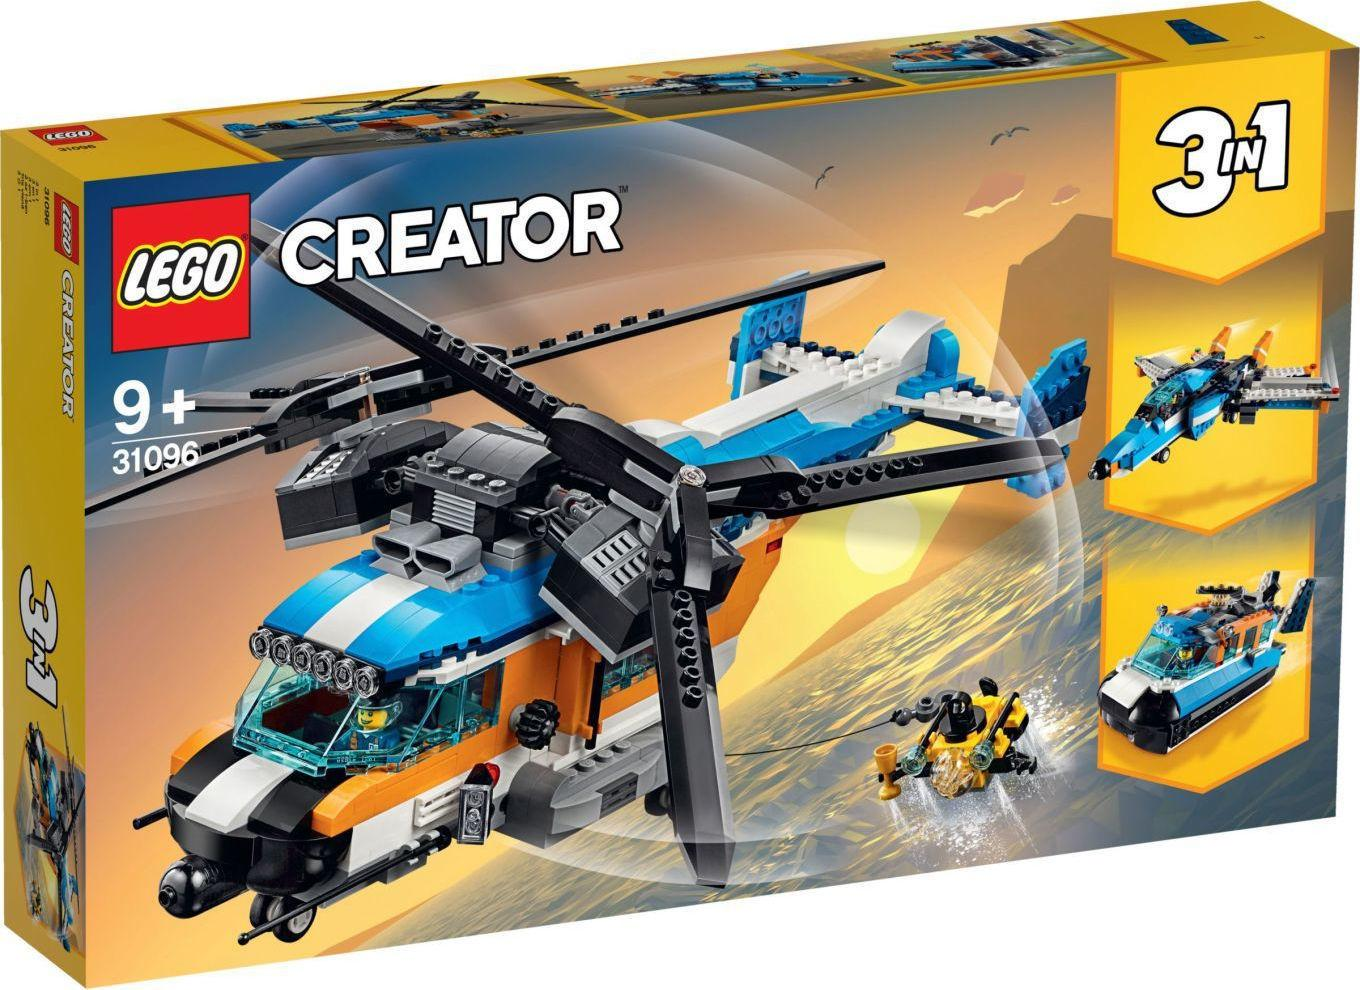 Lego Creator Twin - Rotor Helicopter (31096)